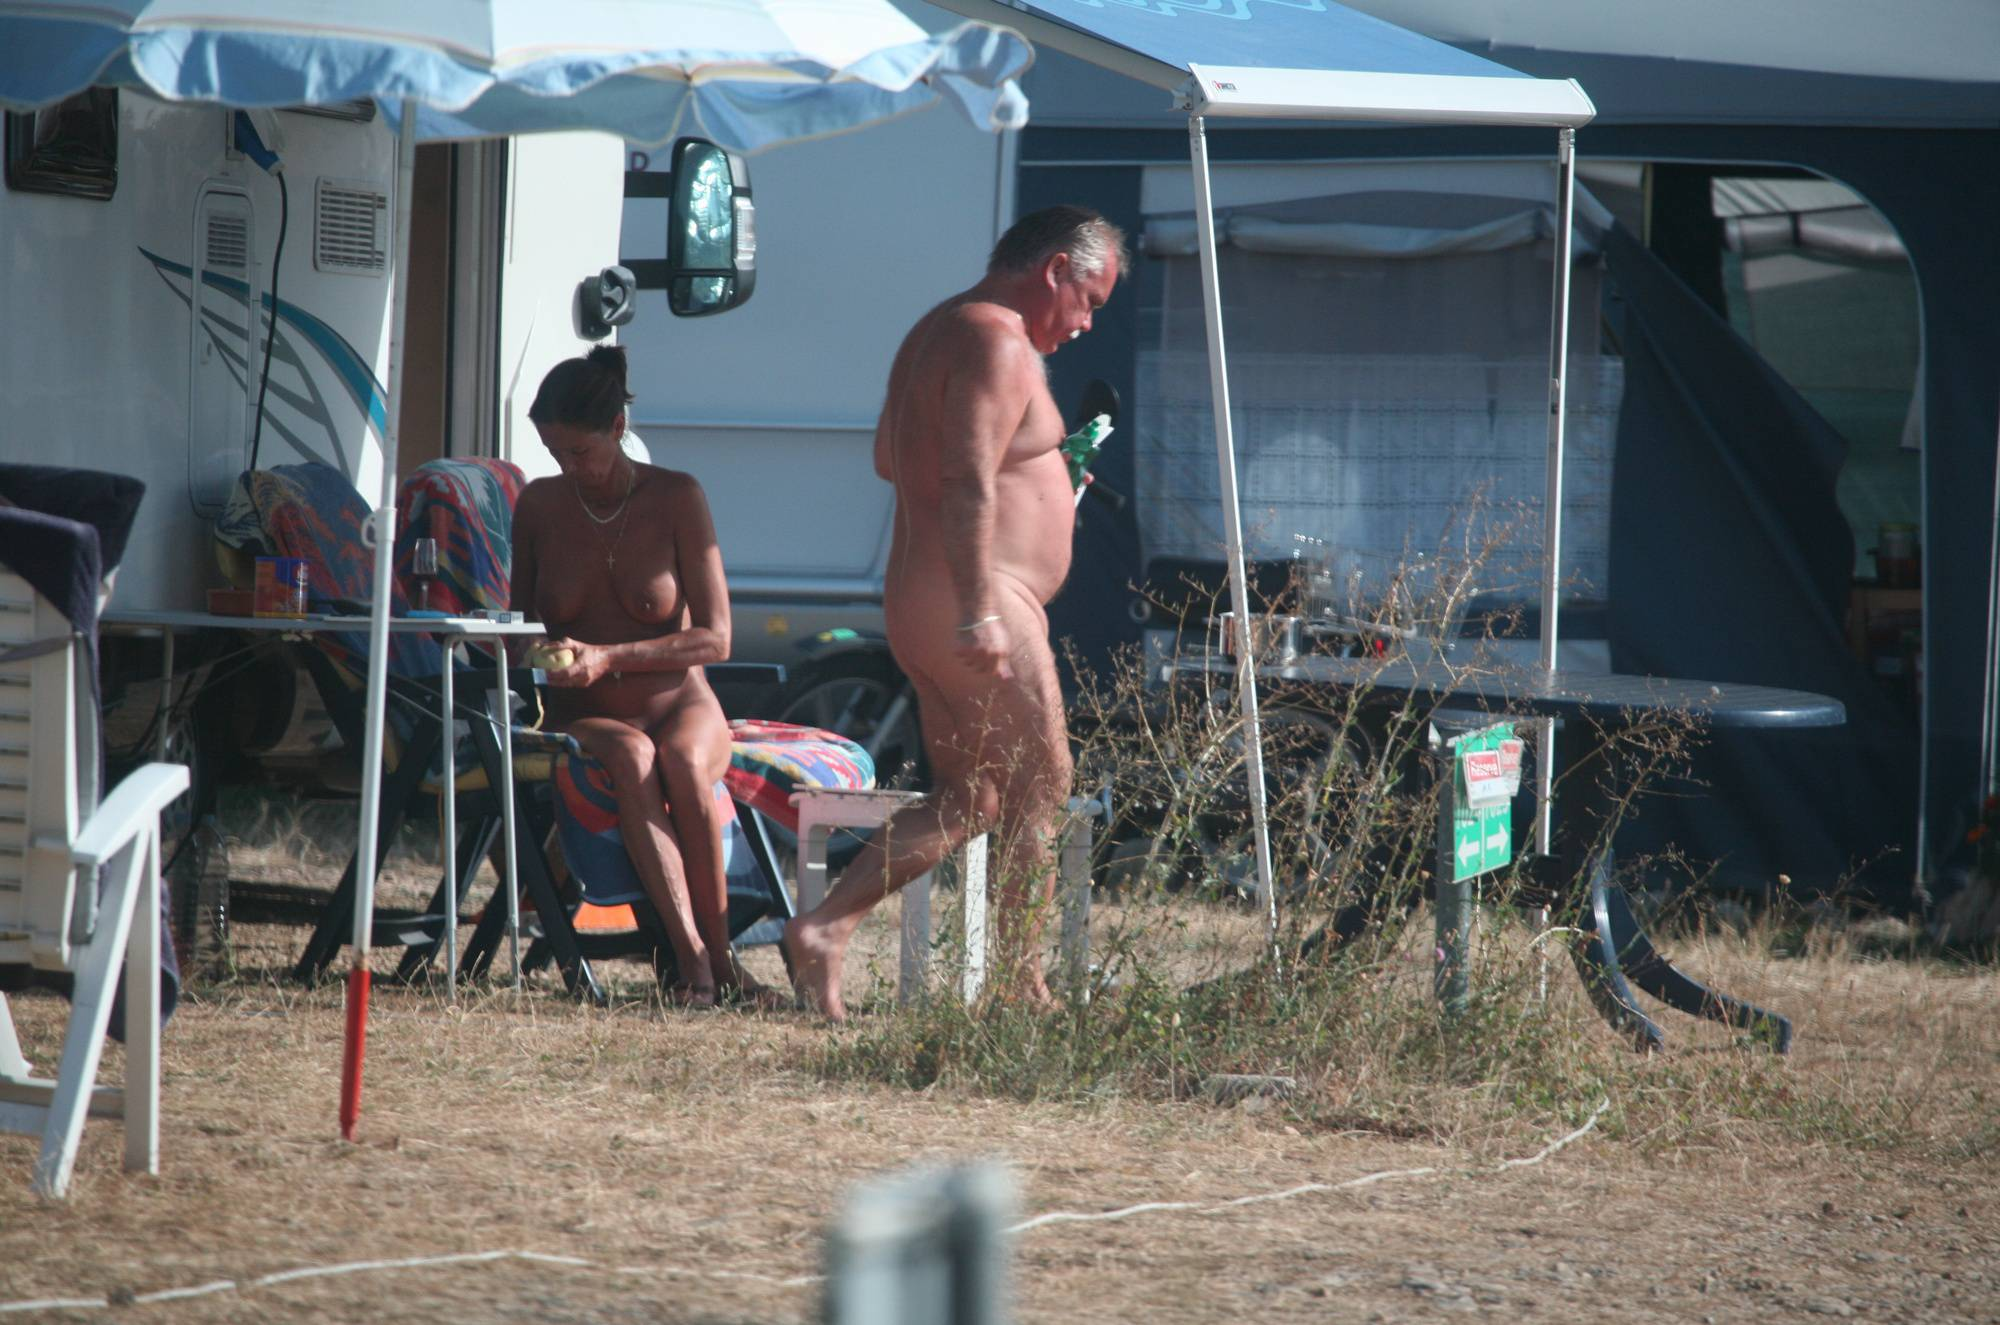 Bares Nude Camping Area - 1